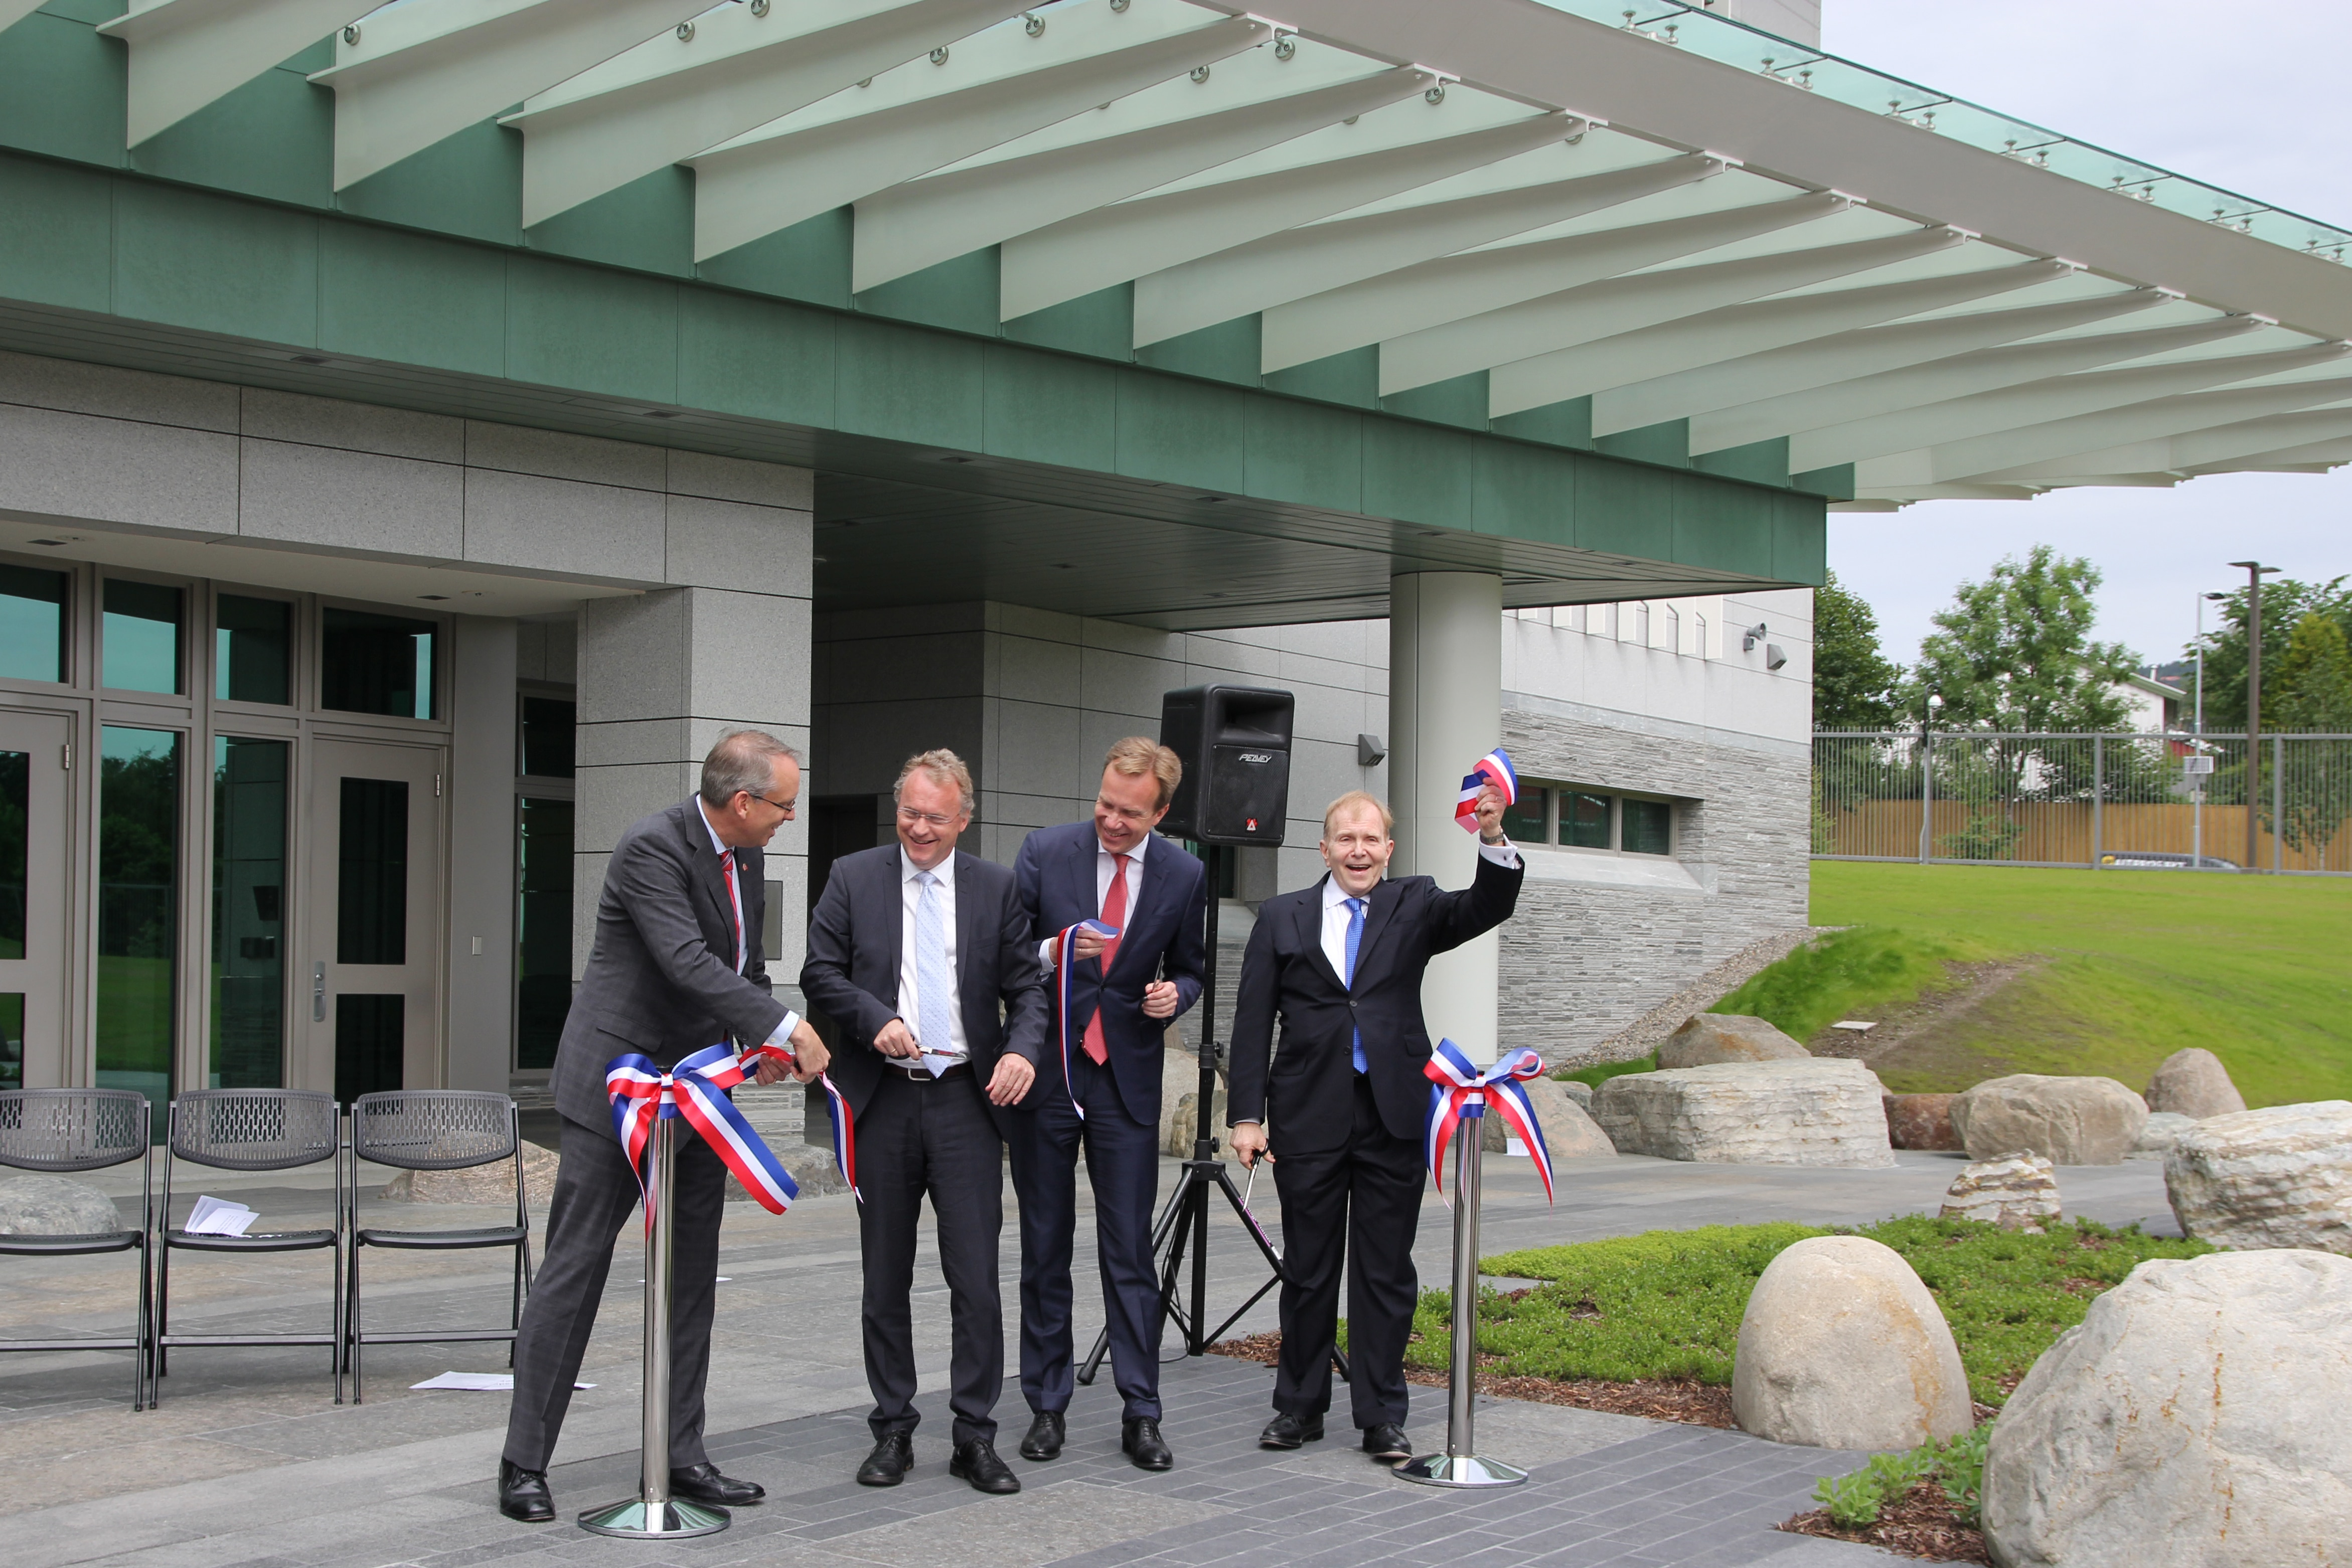 The ribbon is cut and the new U.S. Embassy at Morgedalsvegen 36 at Makrellbekken in Oslo is officially opened!